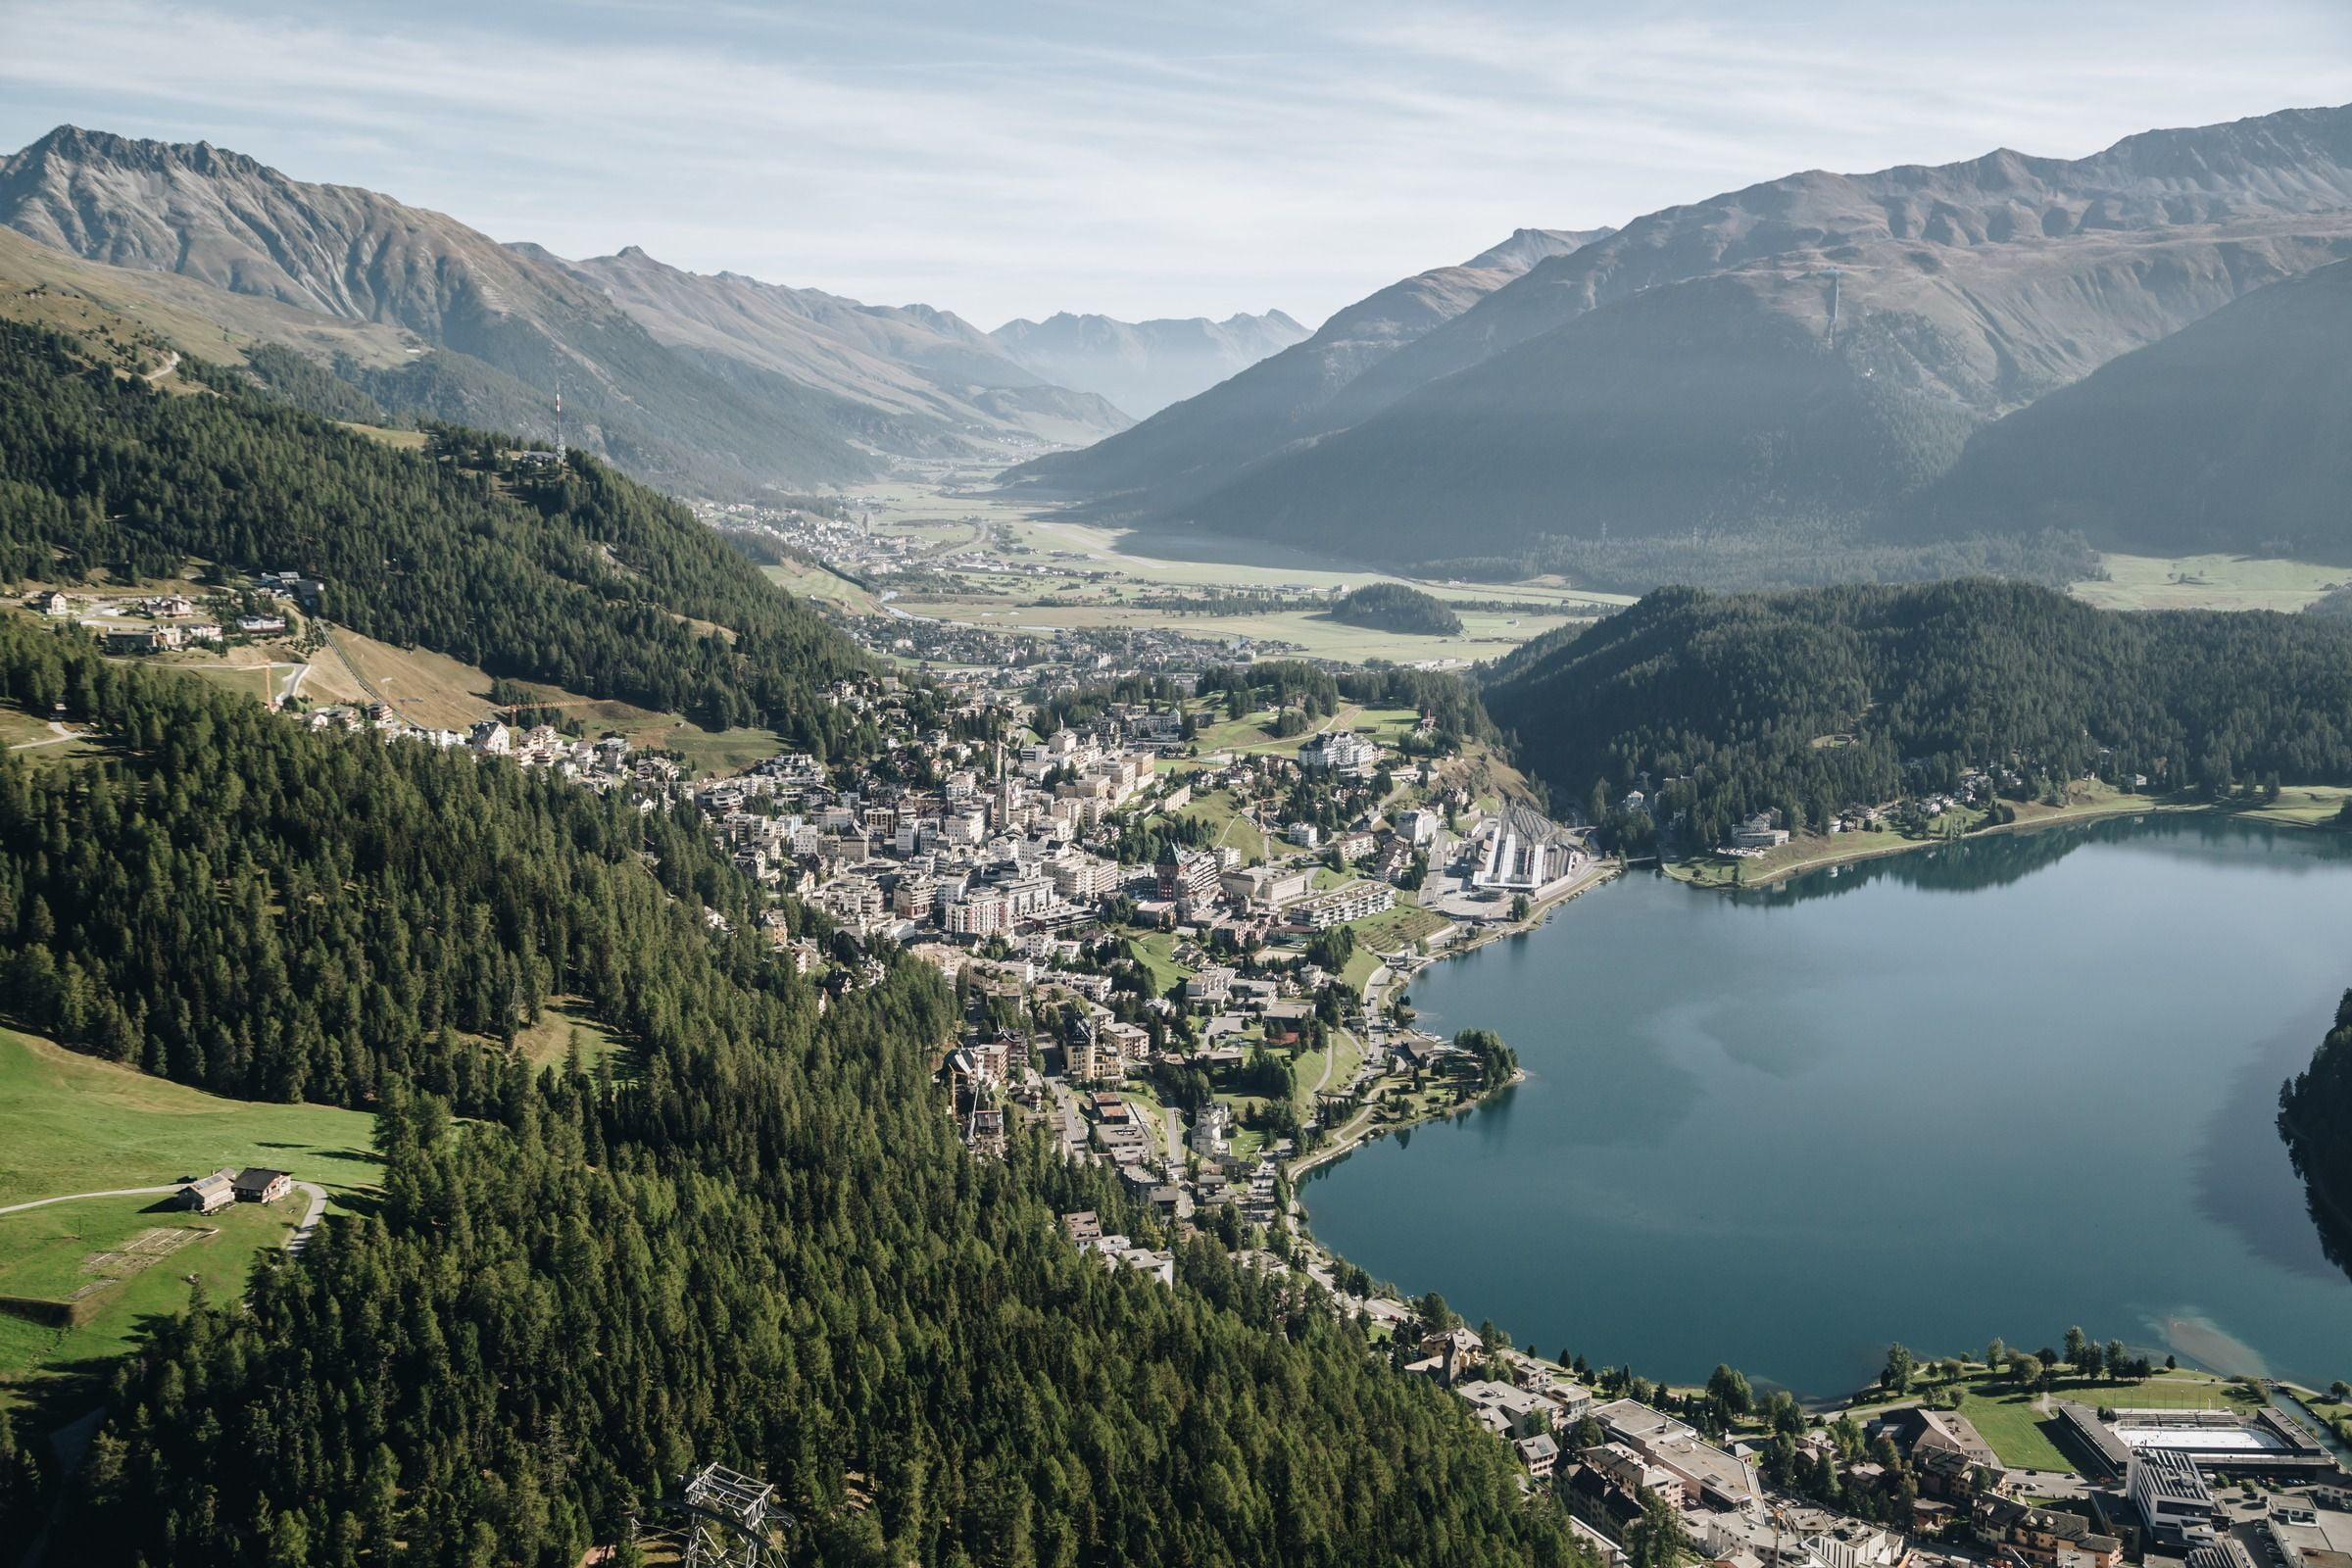 St. Moritz - The cosmopolitan resort